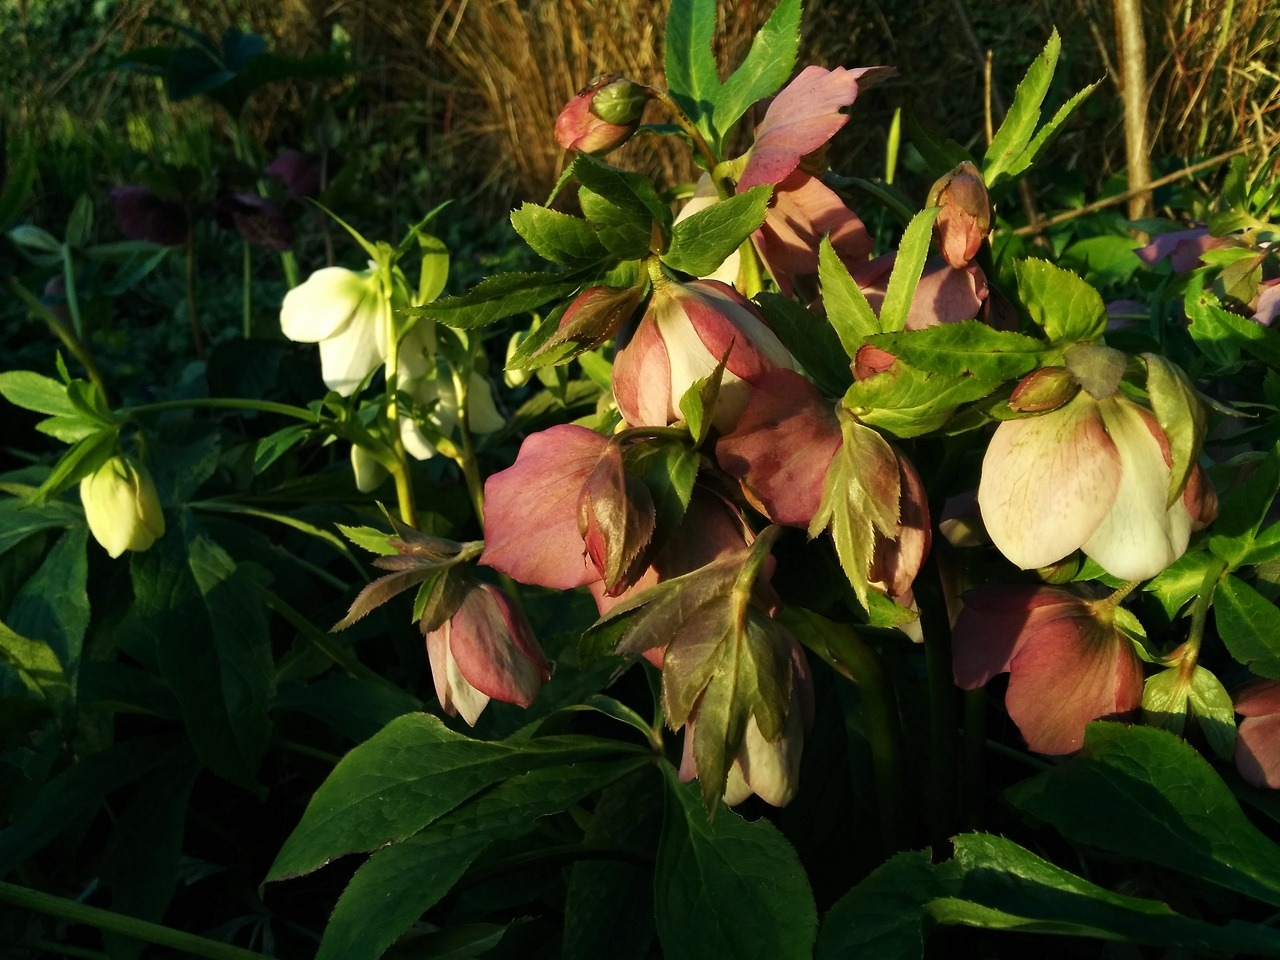 Hellebores the late afternoon sunshine. Working in the garden to nearly 6pm, spring is on the way…